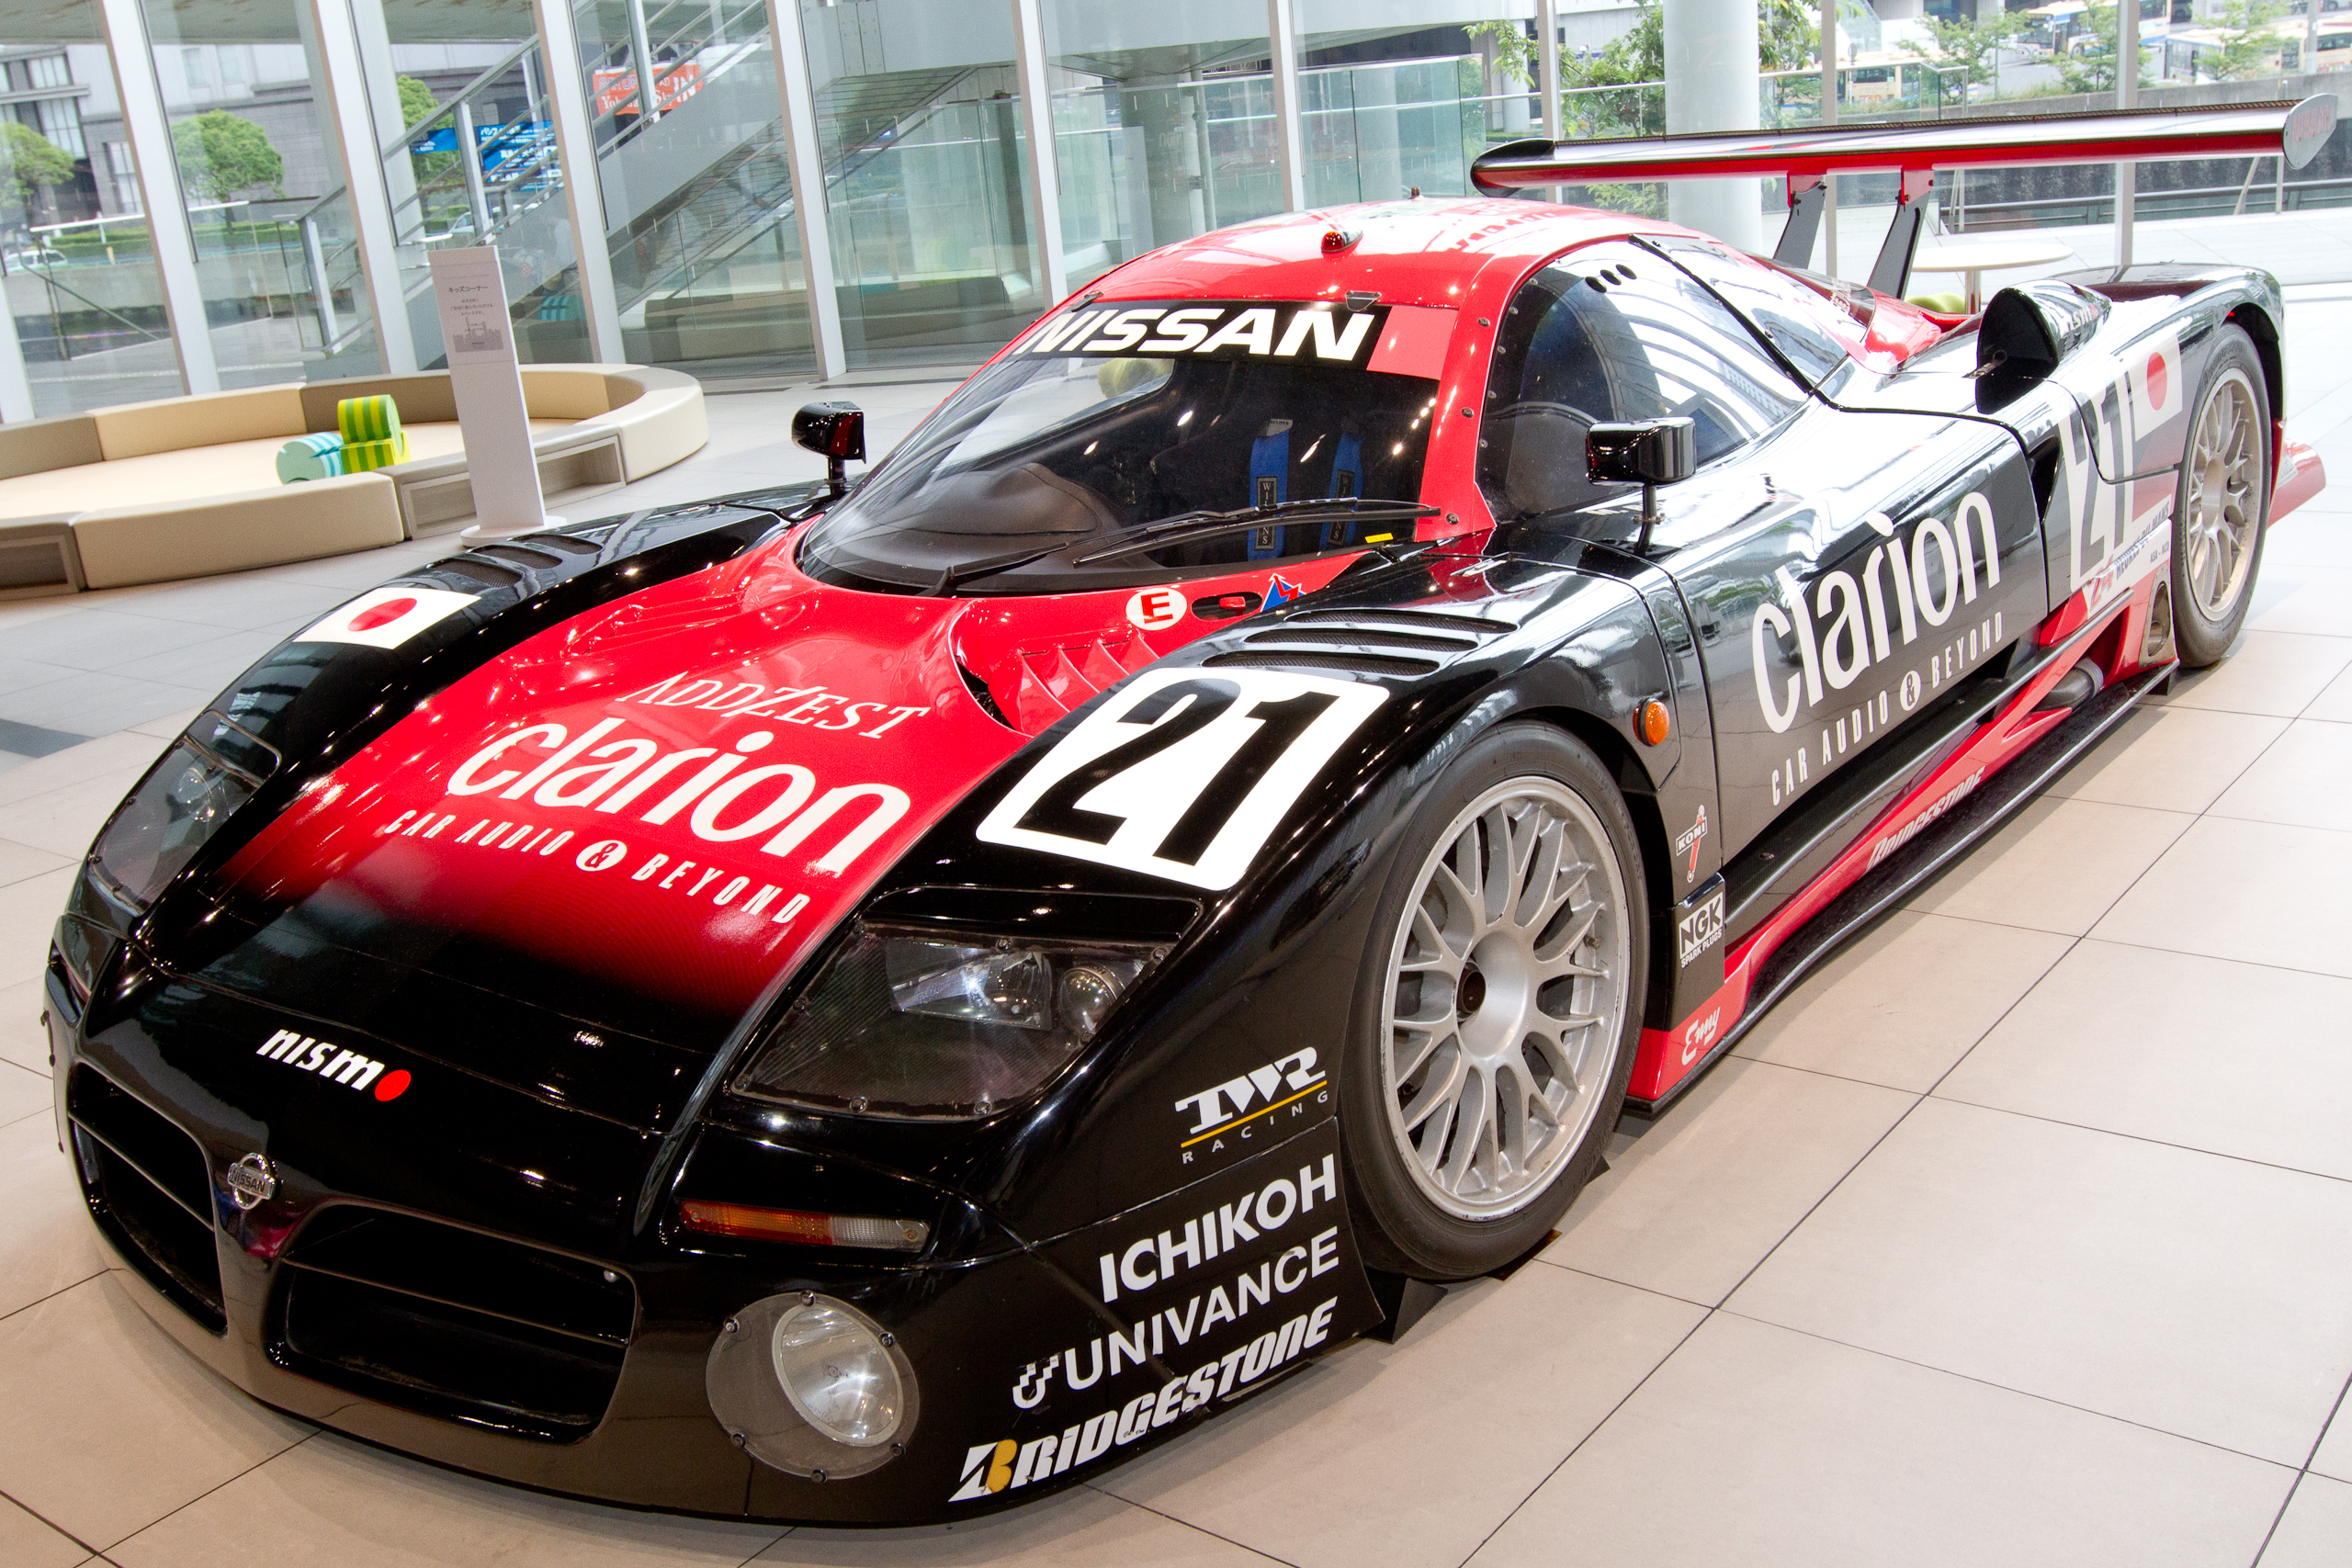 Nissan_R390_GT1_%281997%29_front-left_2012_Nissan_Global_Headquarters_Gallery.jpg